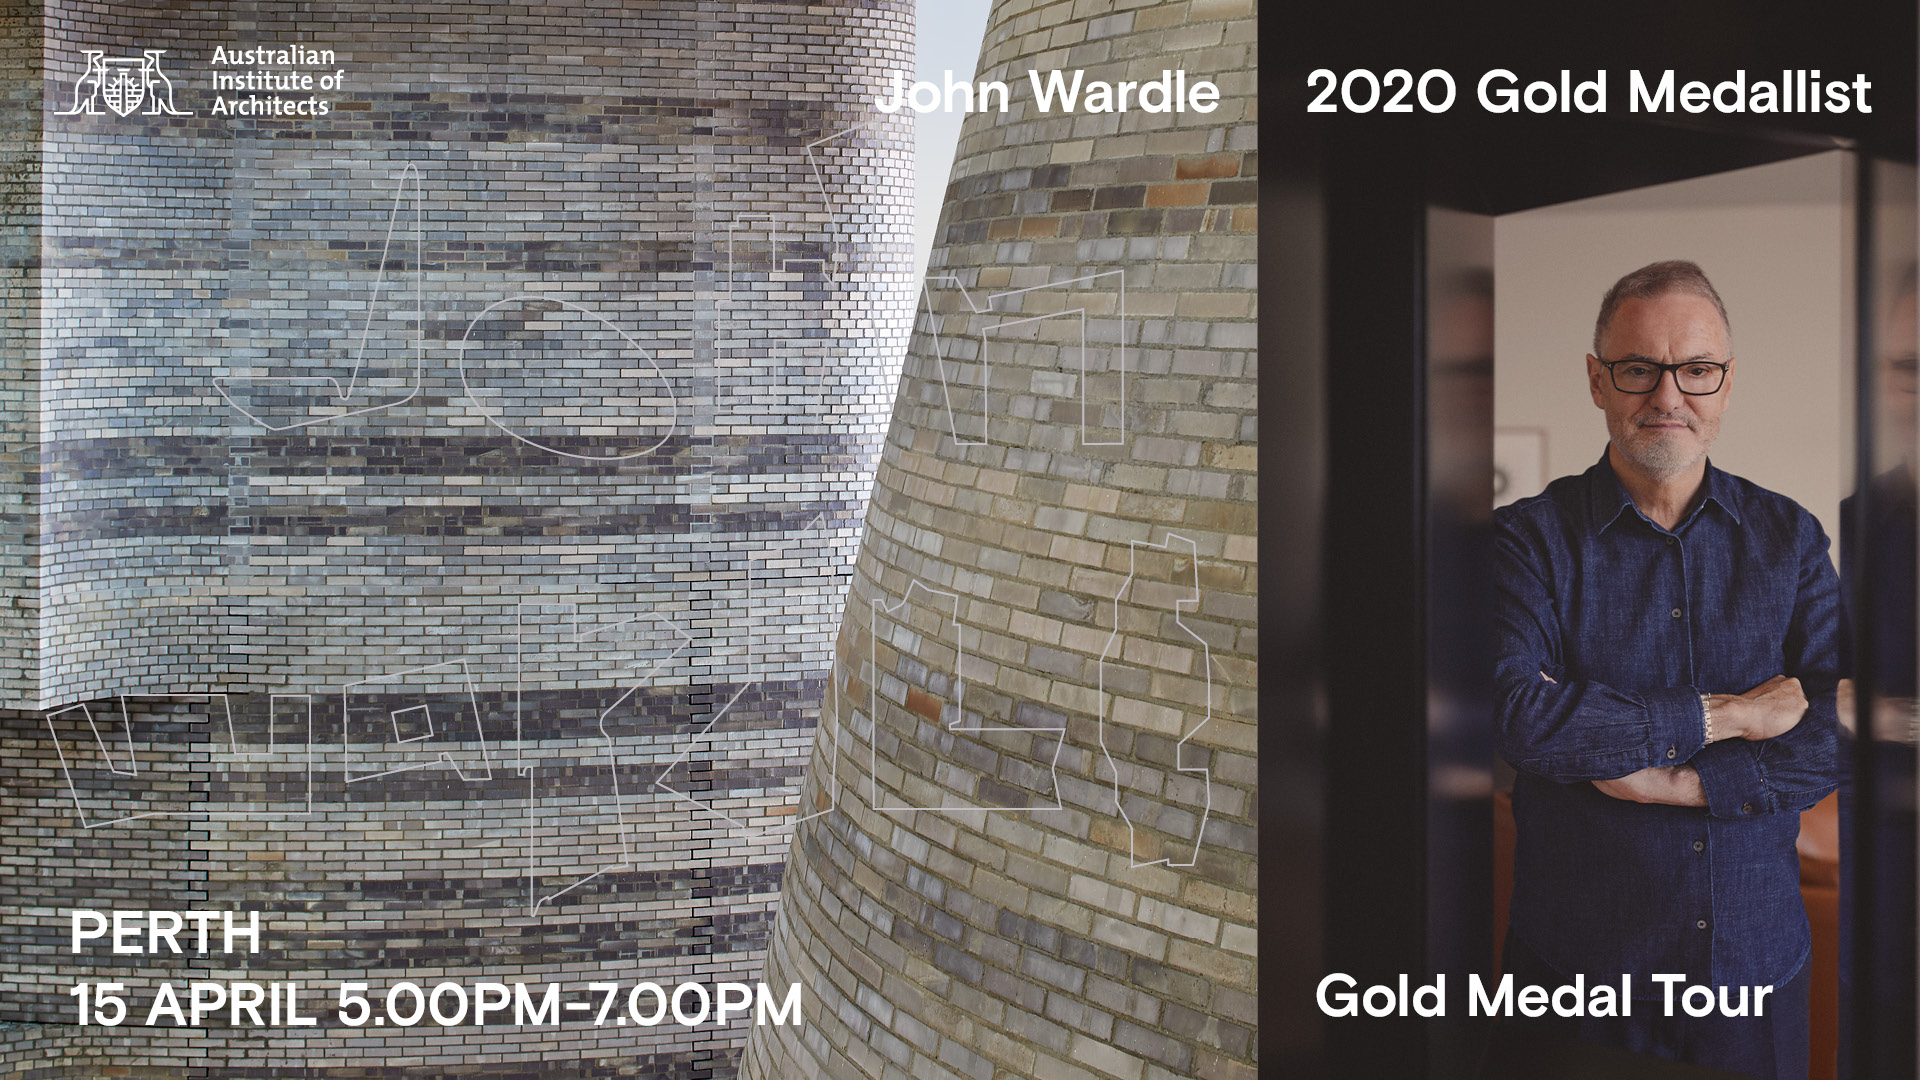 WA - 2020 Gold Medal Tour - John Wardle